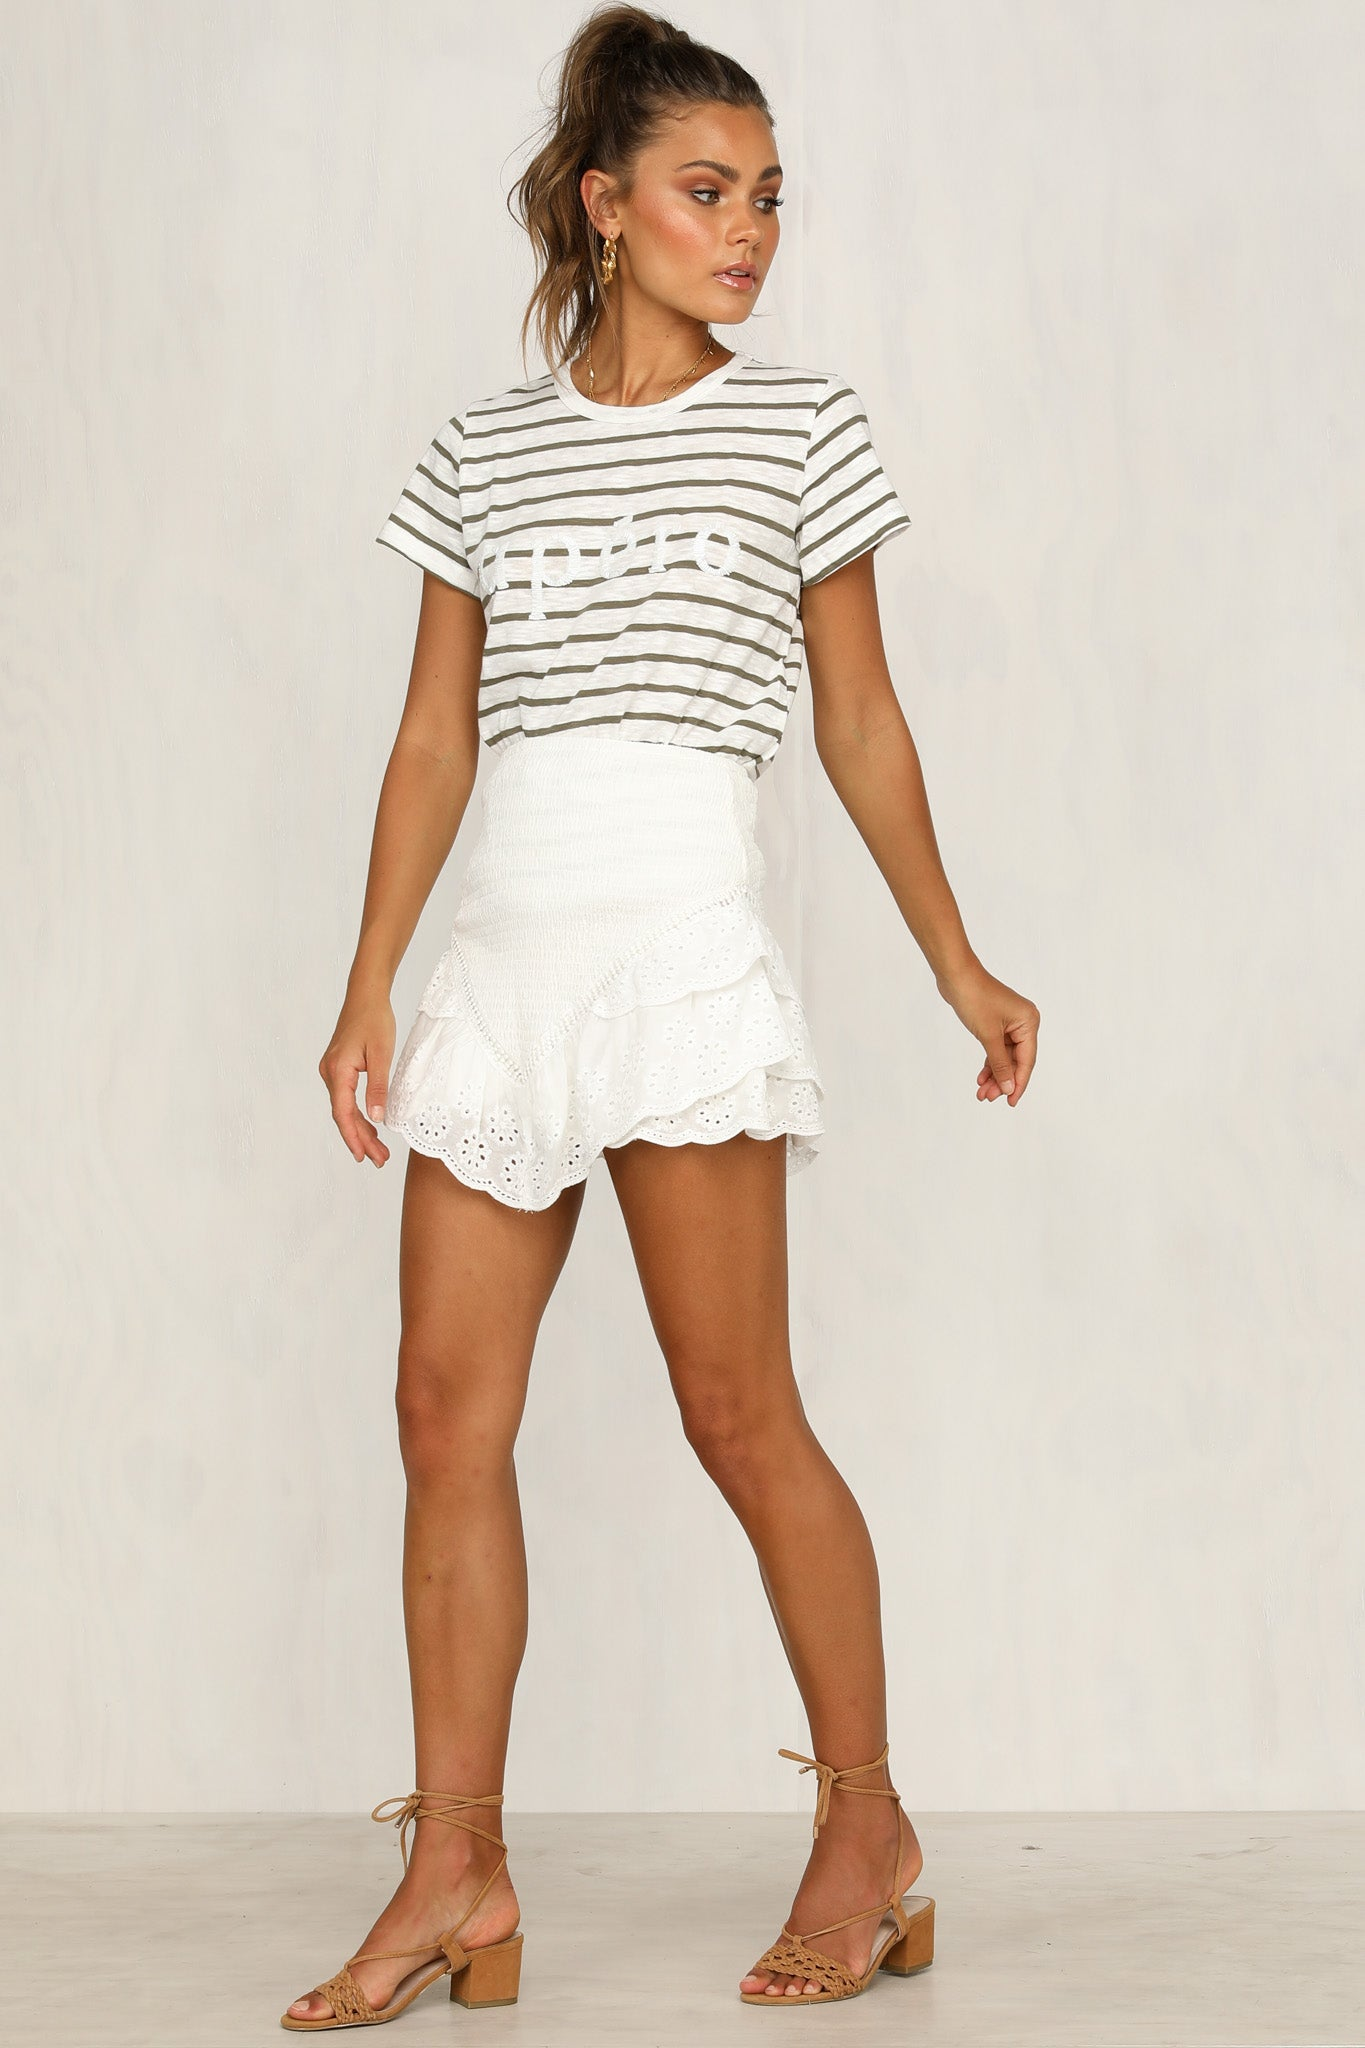 Shy Girl Skirt (White)